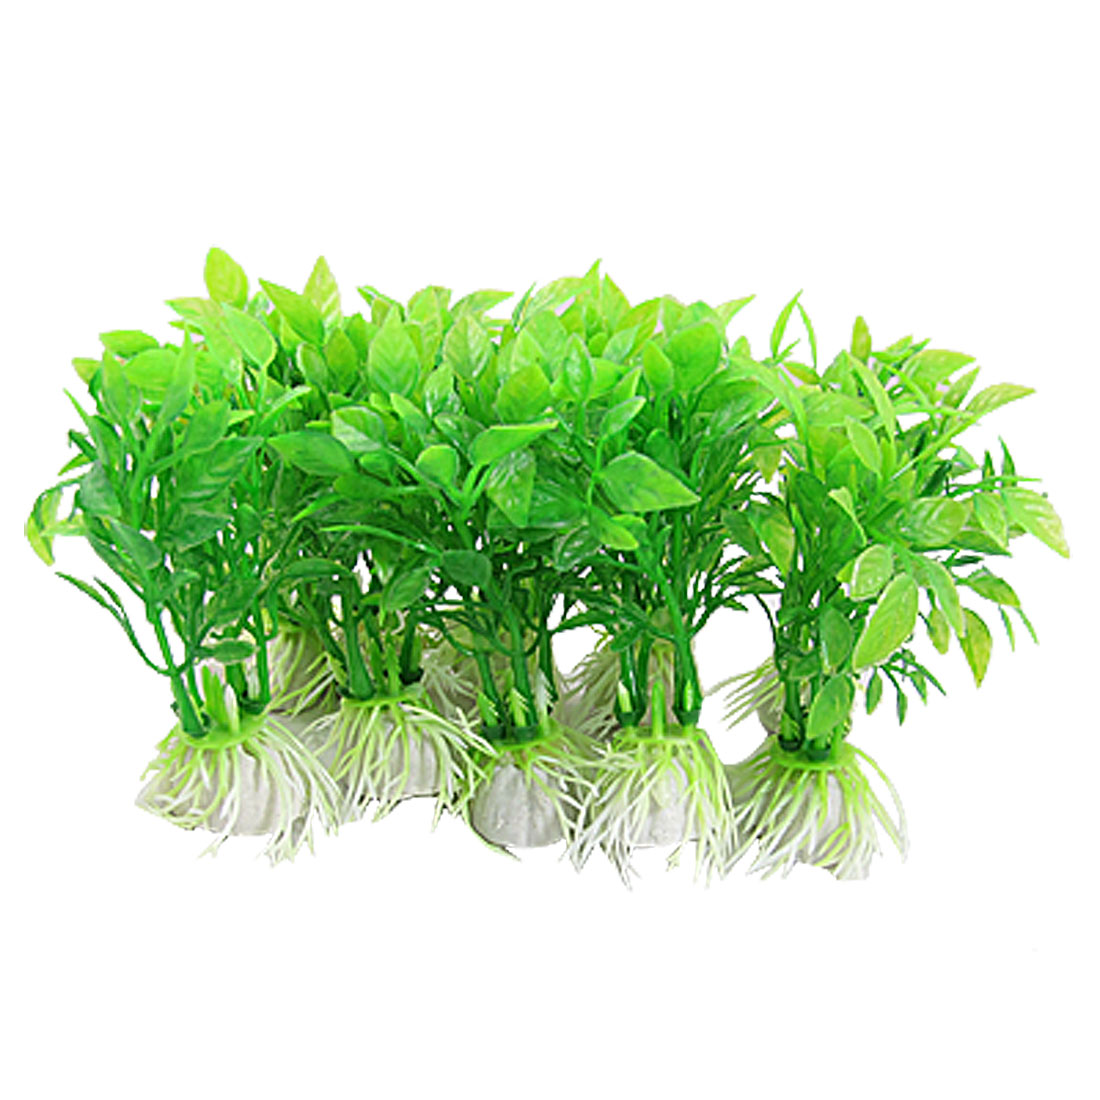 10PCS Green Plastic Underwater Grass Ornament for Fish Tank